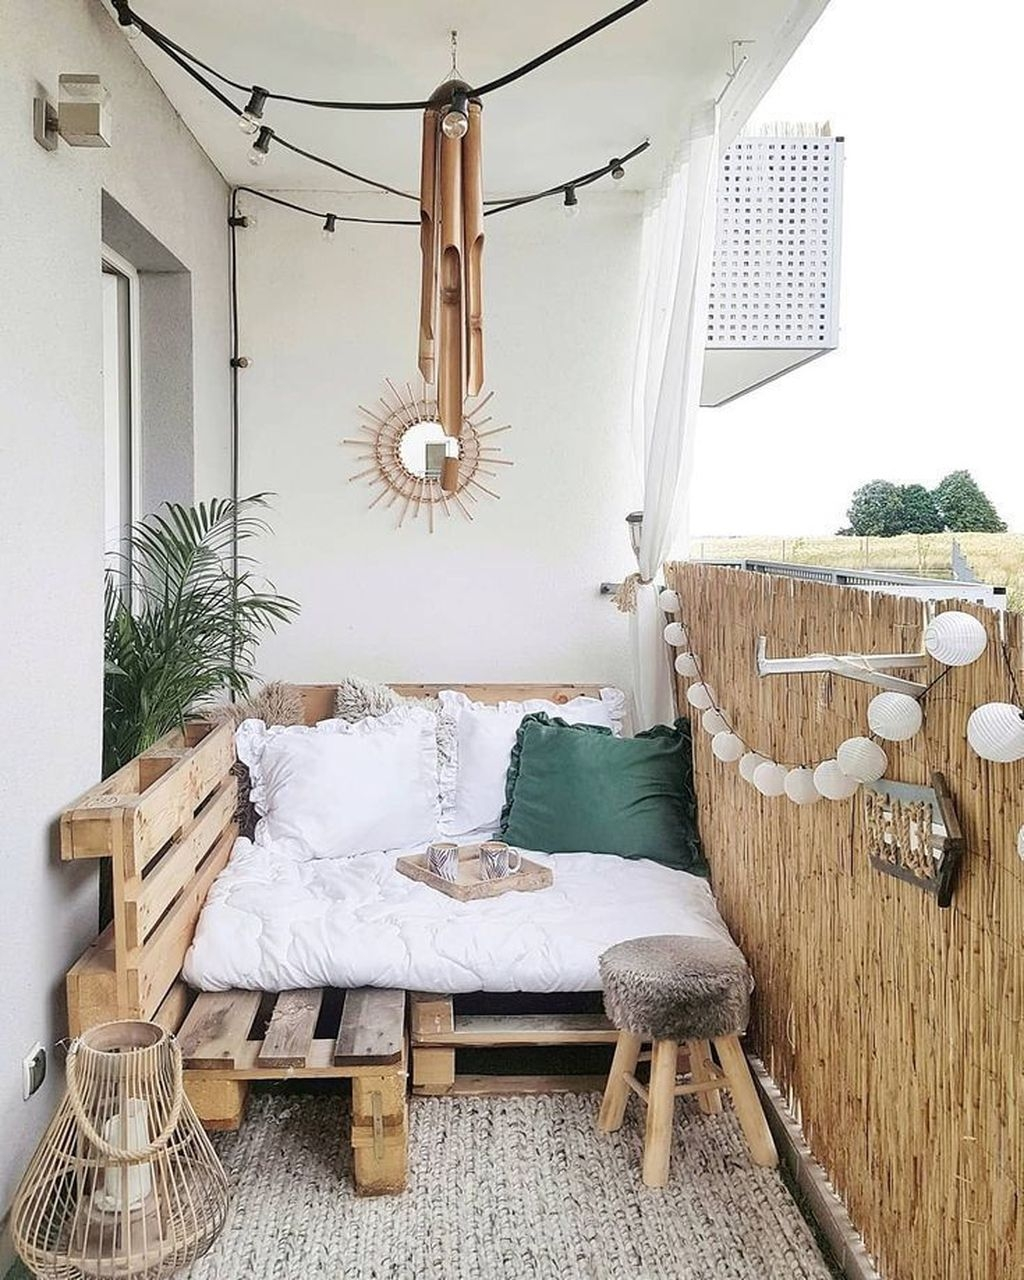 Unique Apartment Décor Ideas You Will Want To Keep16